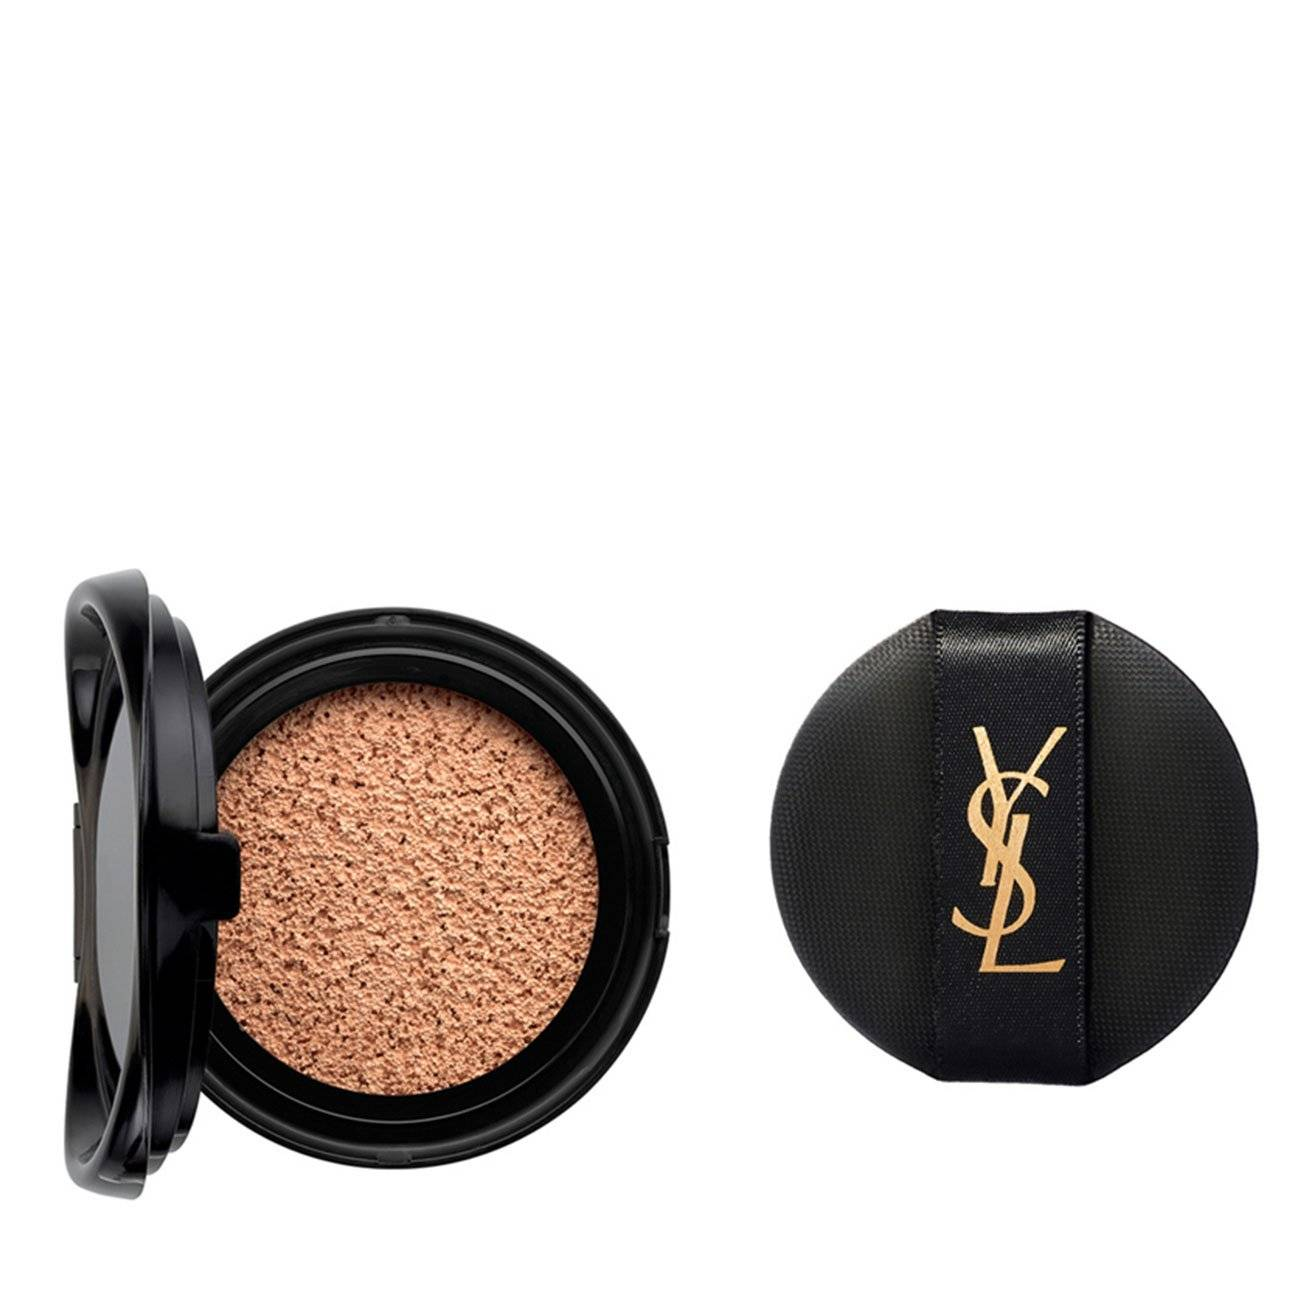 Encre De Peau Cushion Foundation Refill B20 14gr